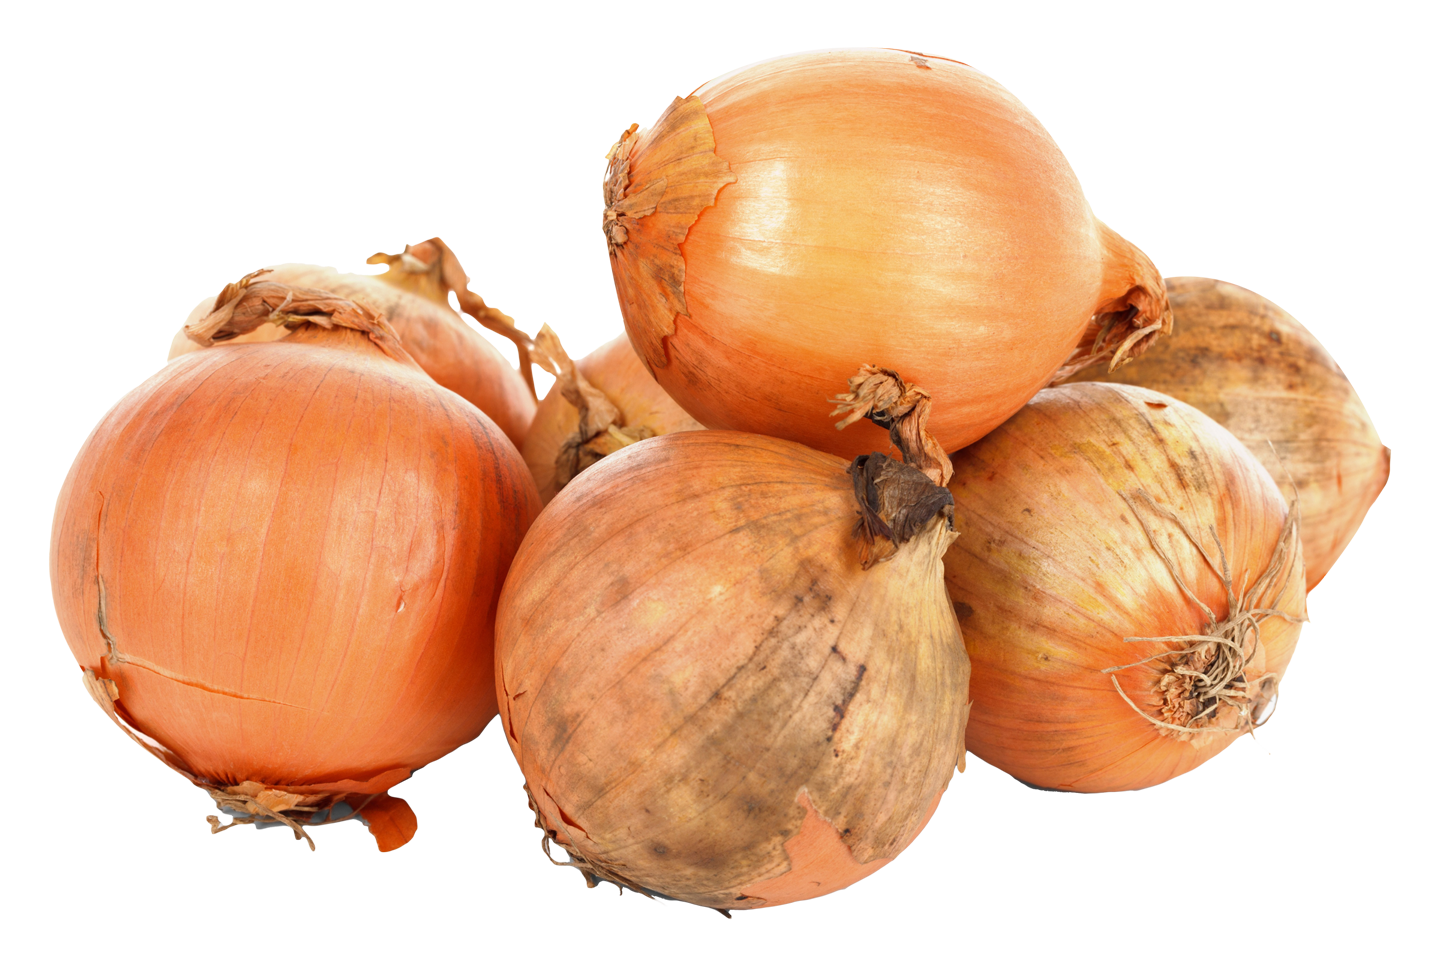 Onion PNG - 18498